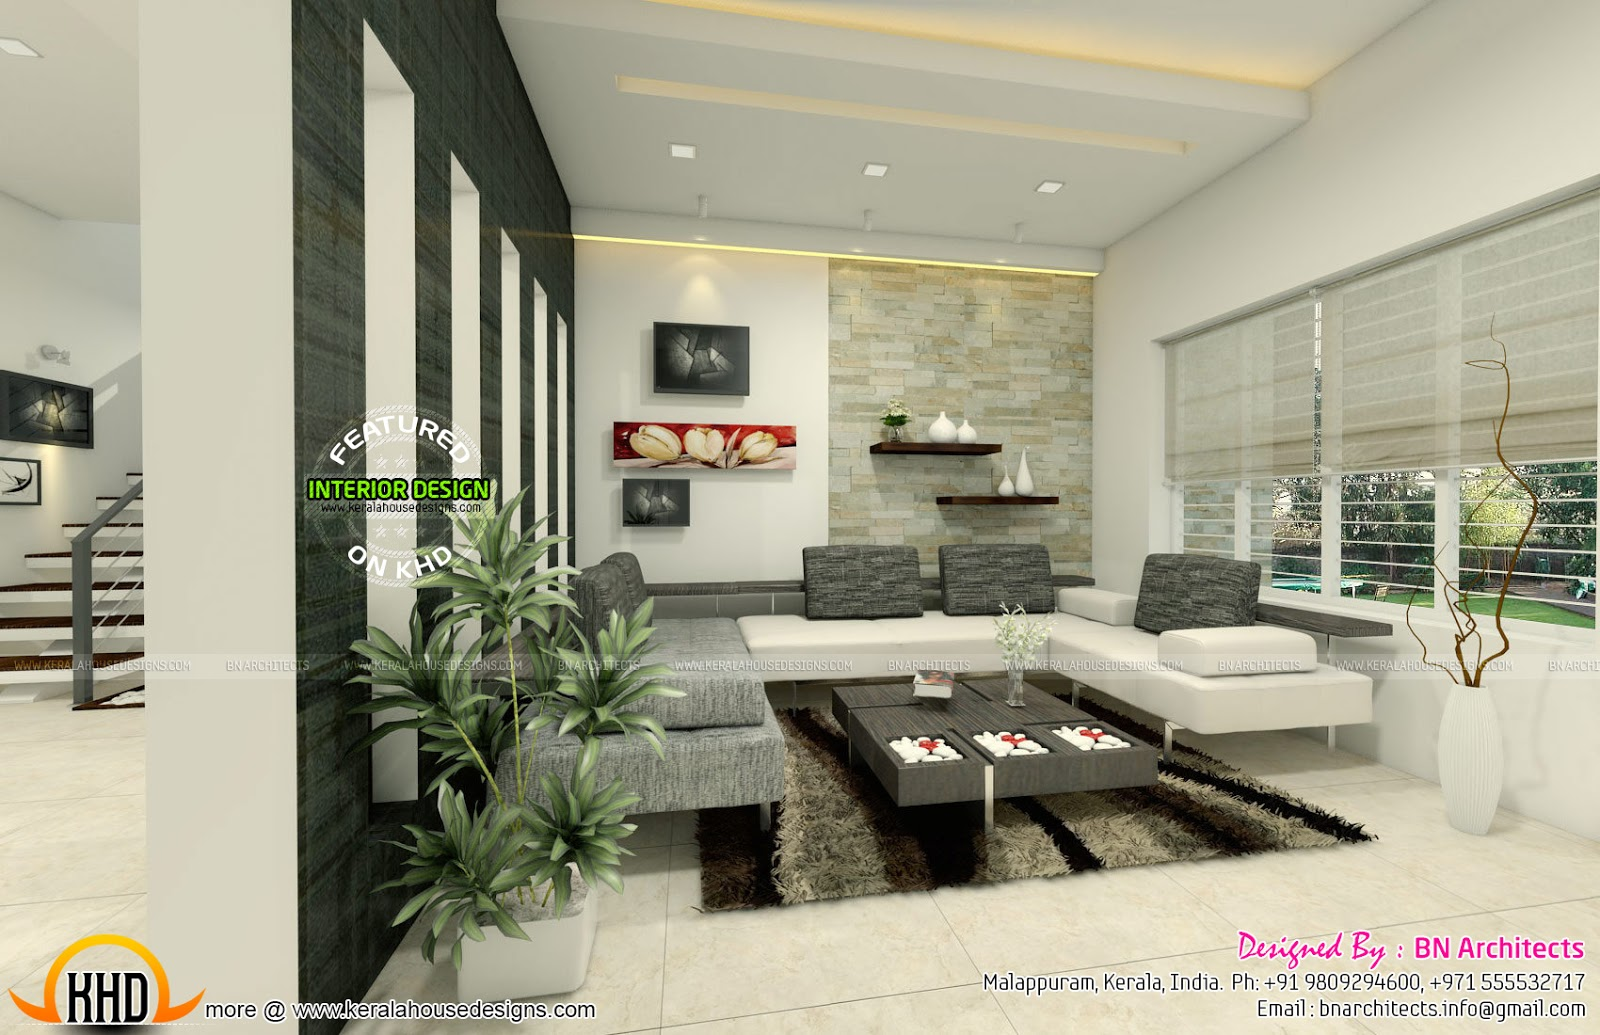 Interior Designers In Kerala For Home: All In One : House Elevation, Floor Plan And Interiors